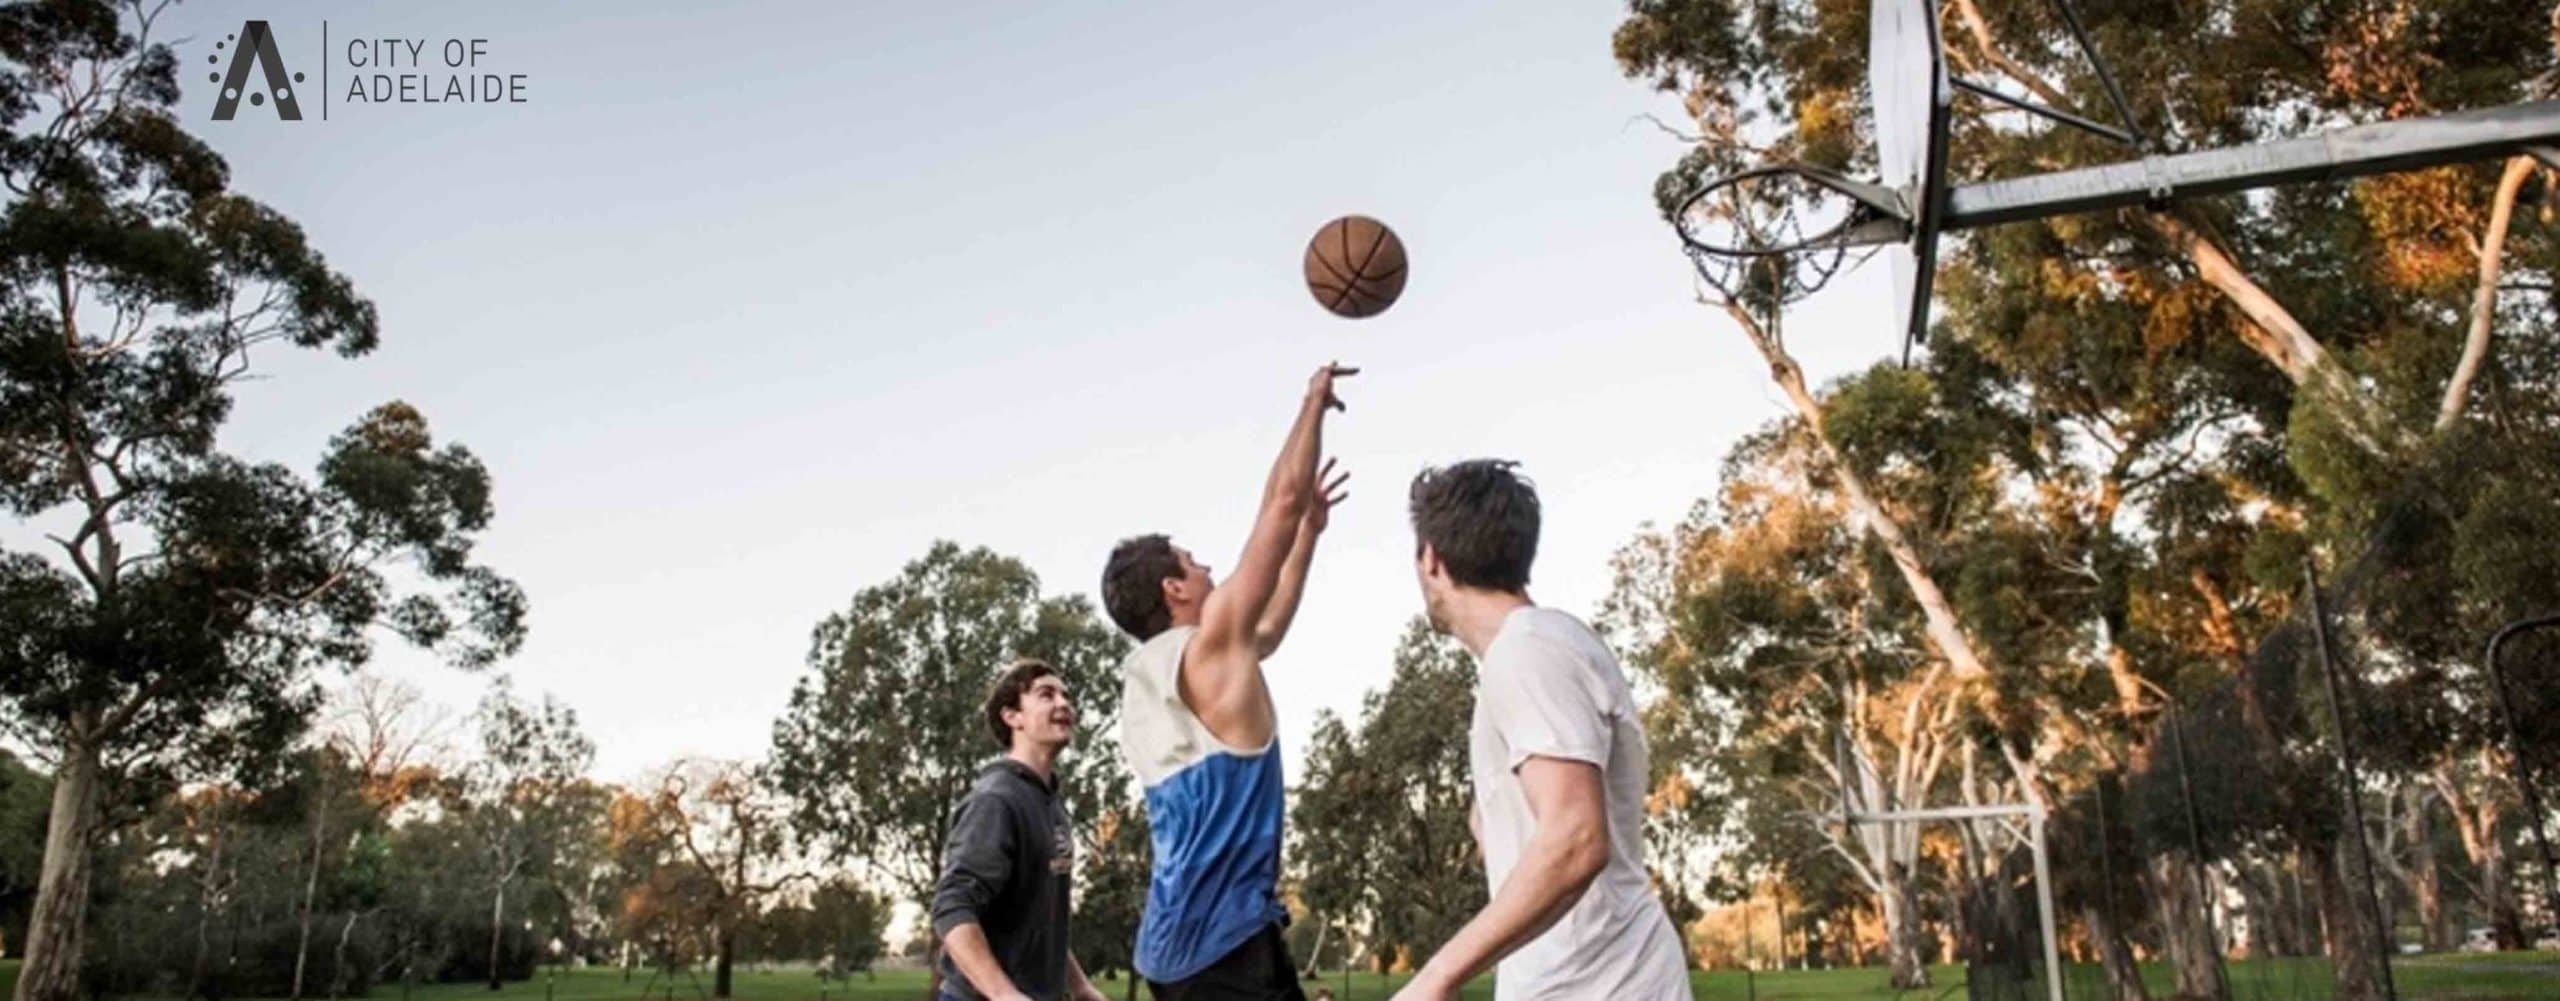 3 young men playing basketball in a park. City of Adelaide Council logo in top left corner of graphic